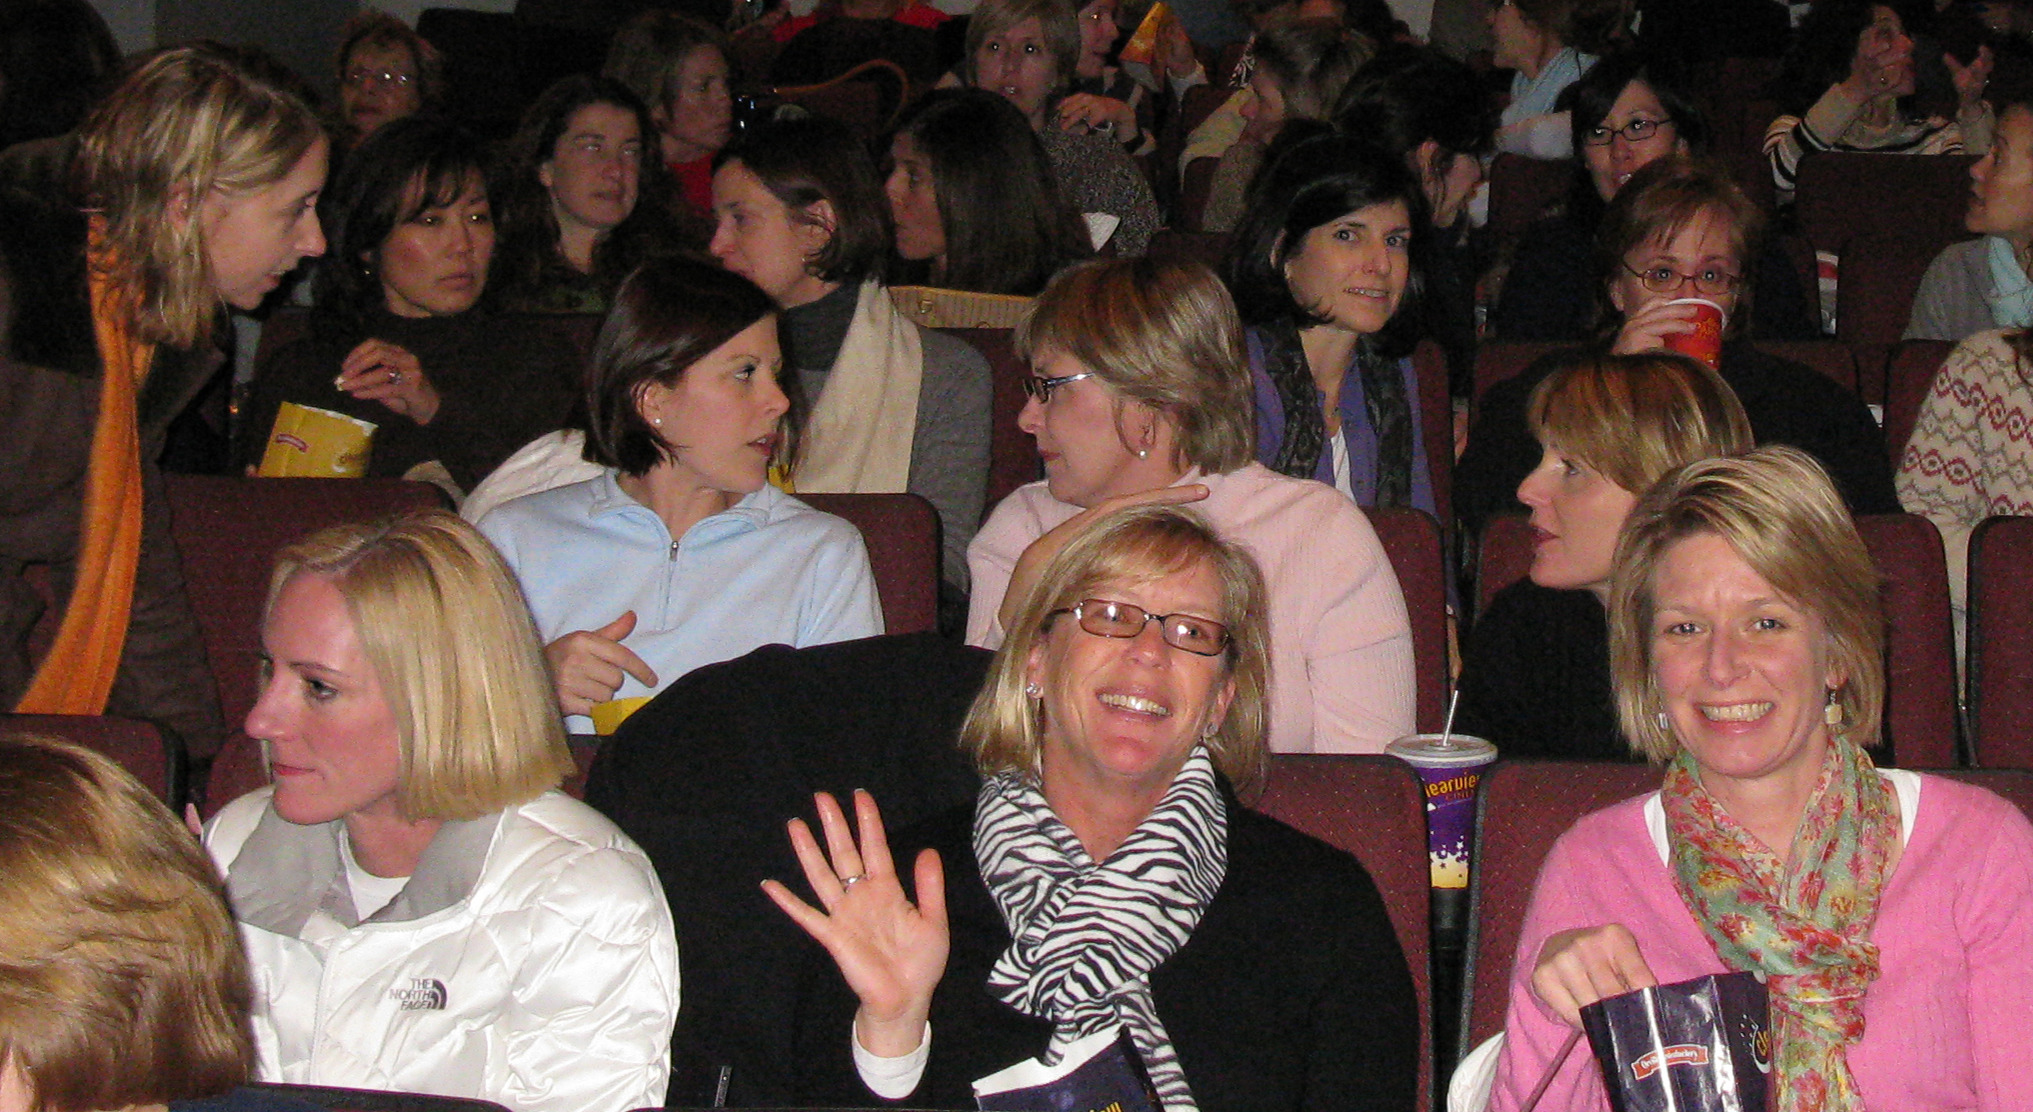 9bc27d6302a32dff1f36_Matinee_Club_group_in_theater_-_best.jpg